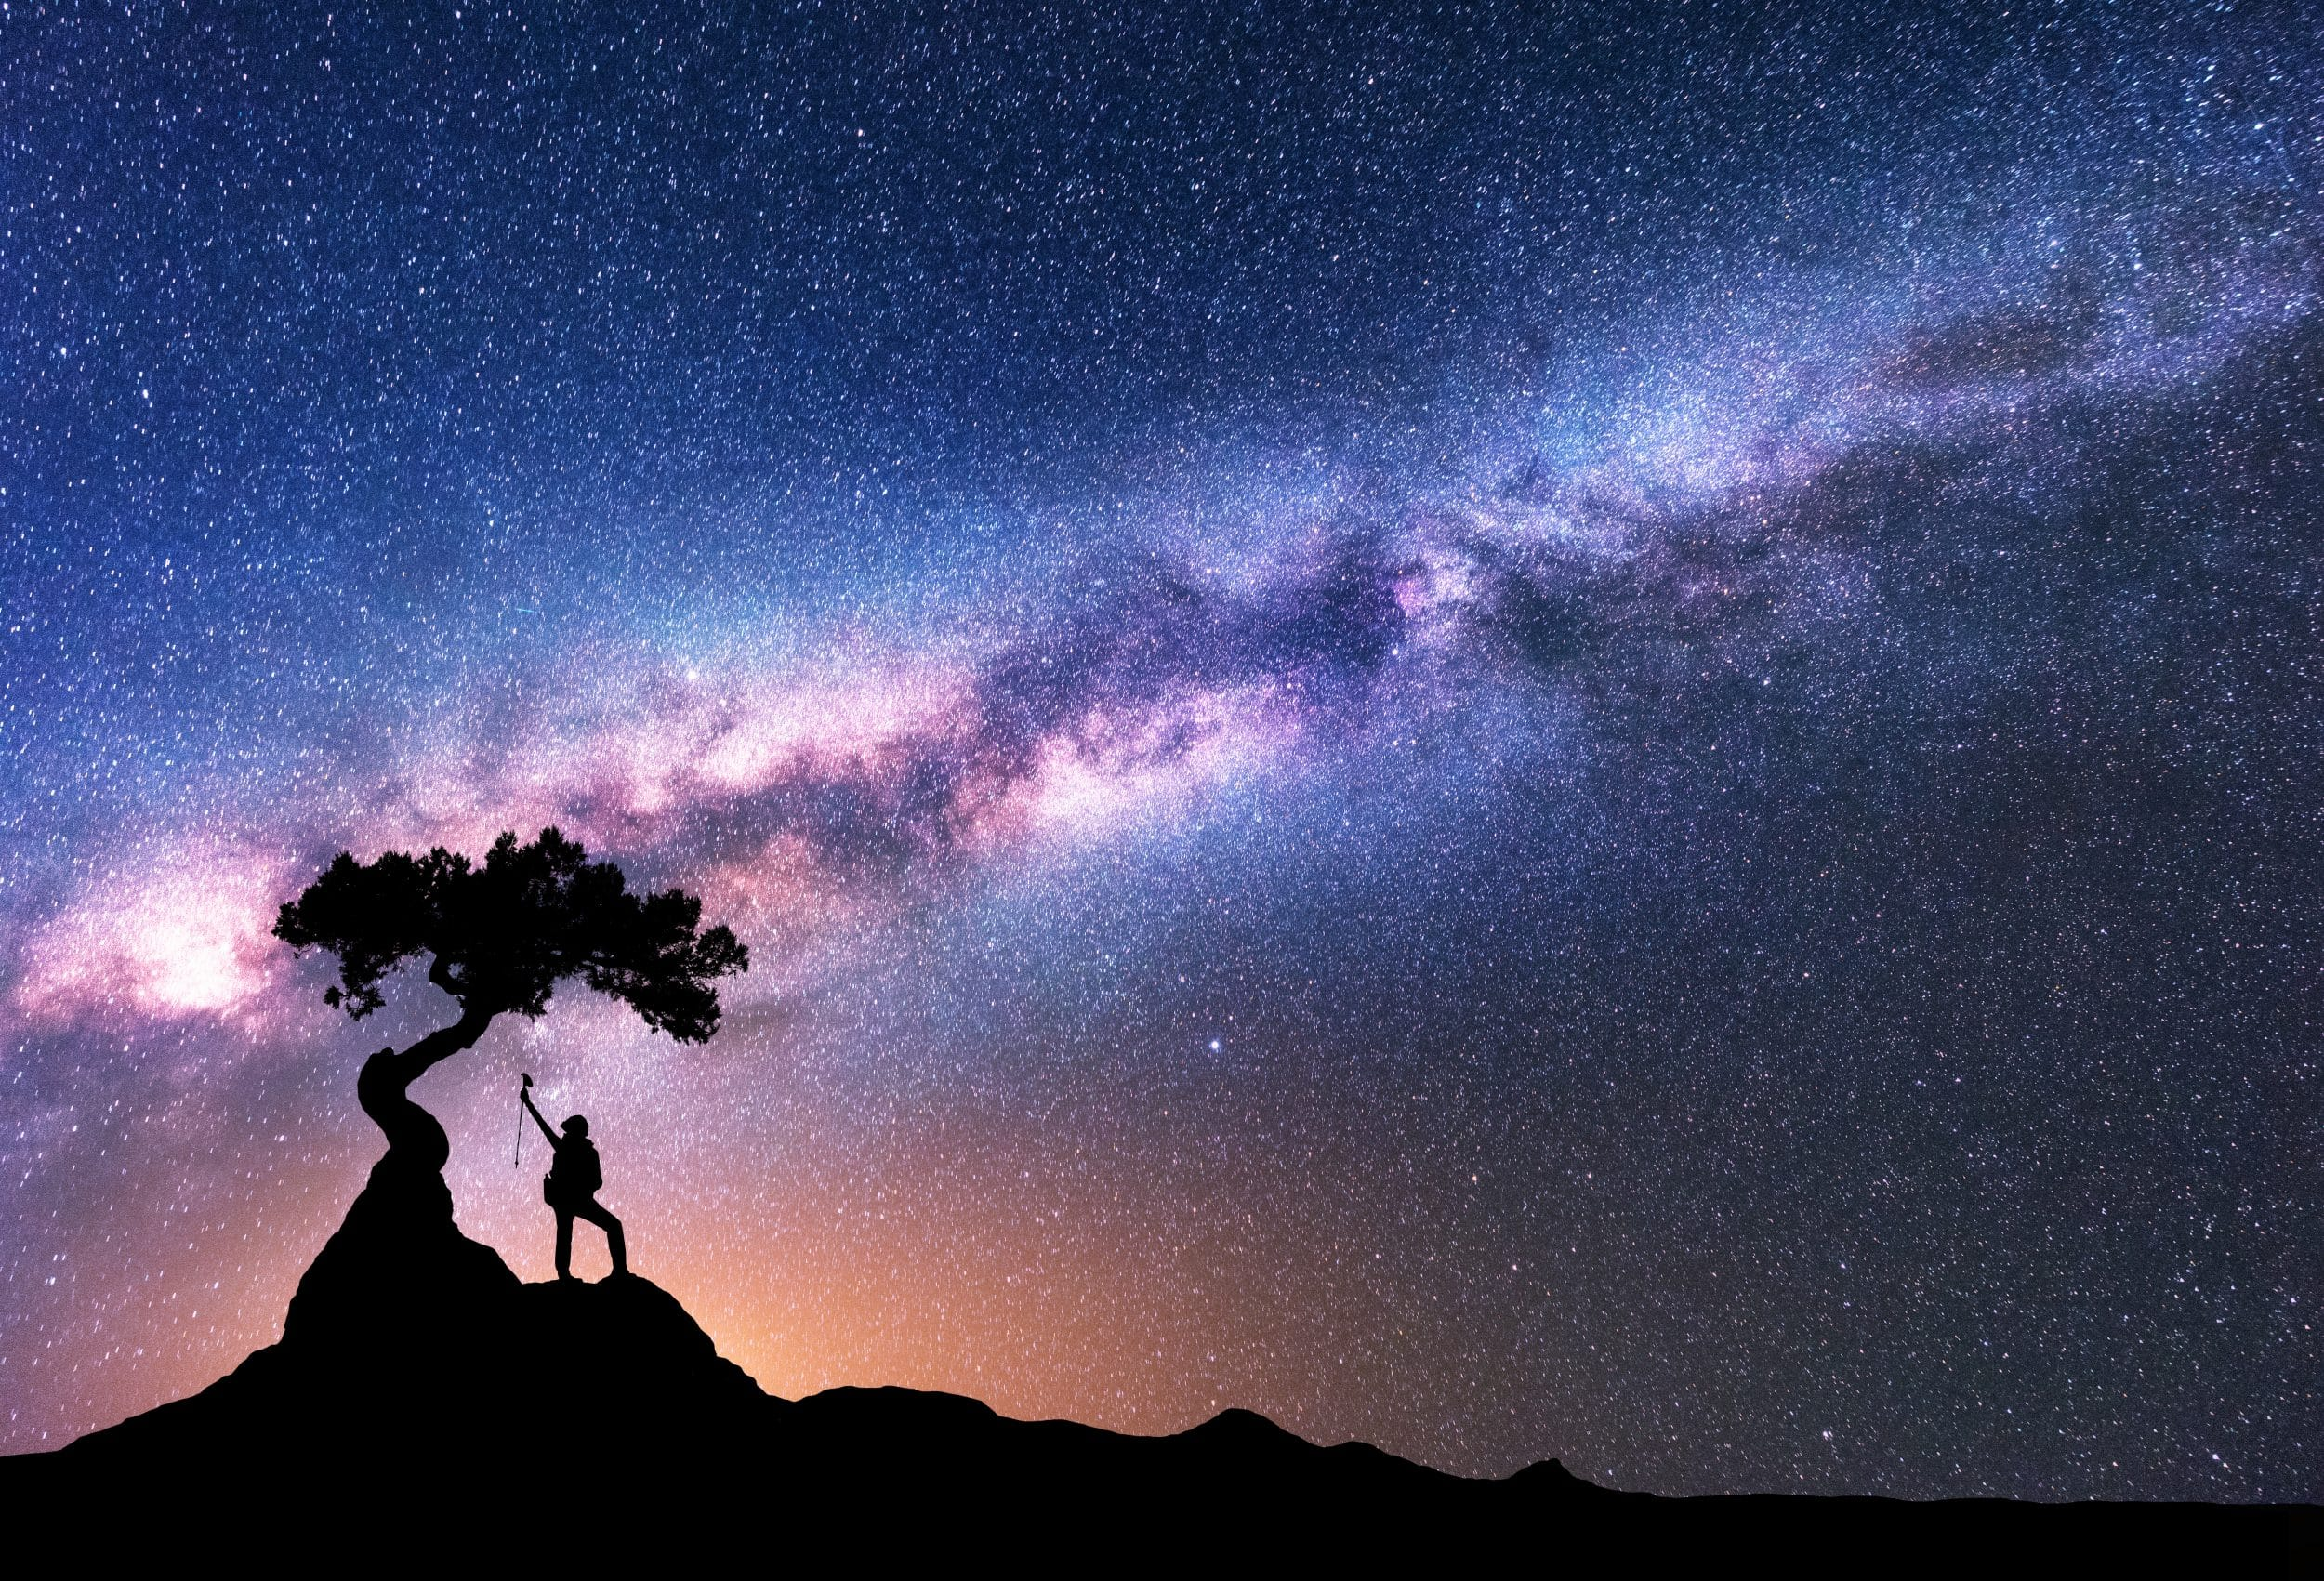 Milky Way and silhouette of woman under the tree growing from the rock on the mountain at night. Space background with starry sky, beautiful galaxy and girl. Purple Milky Way and woman. Universe